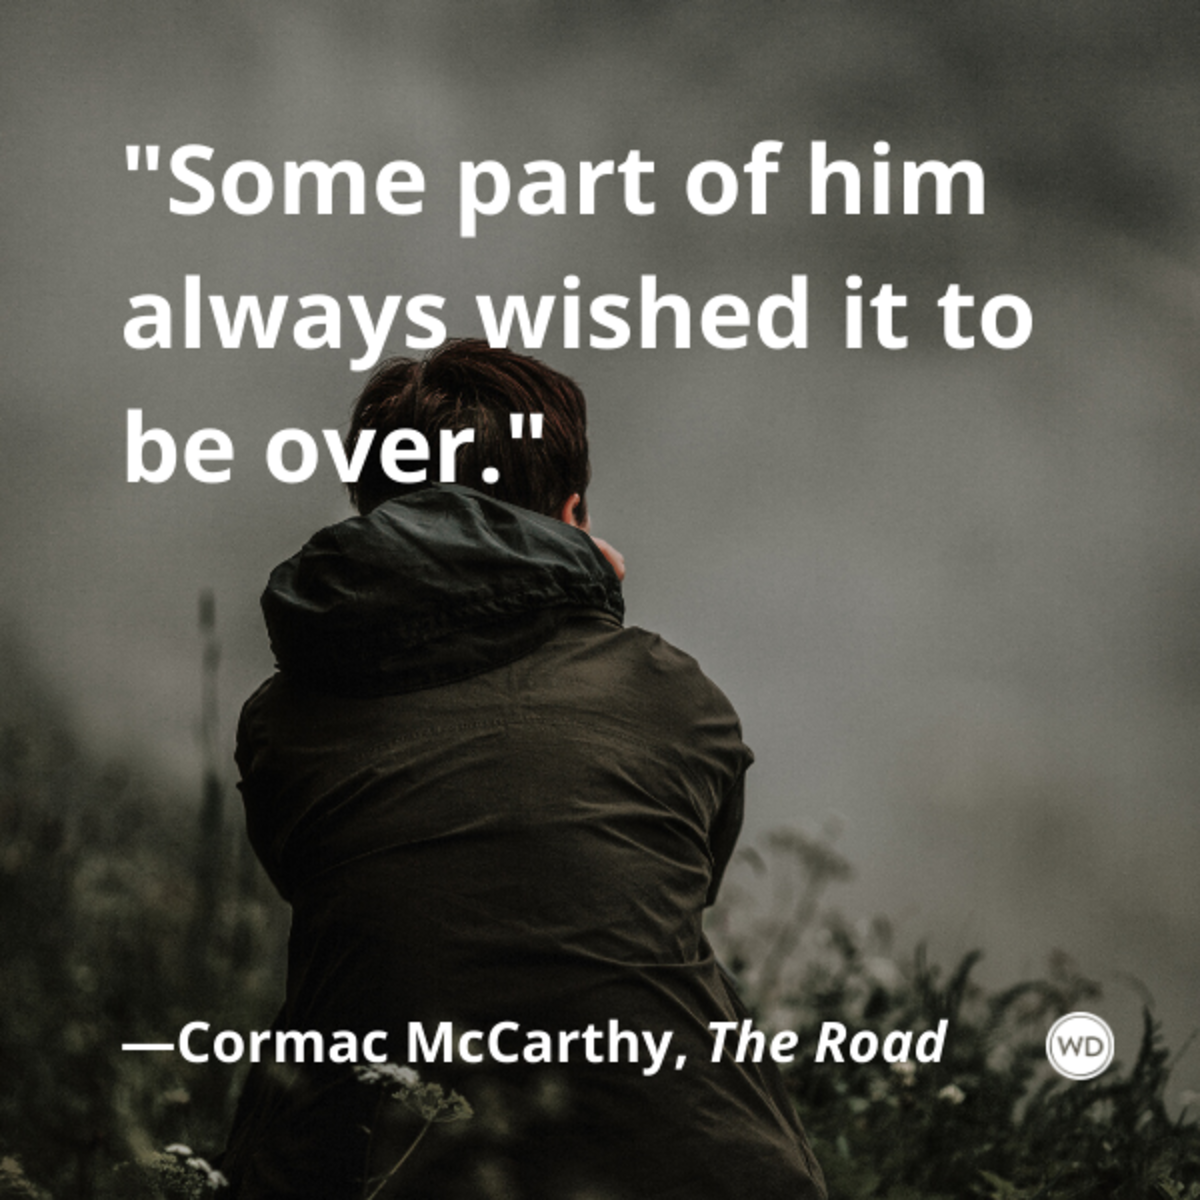 cormac_mccarthy_the_road_quotes_some_part_of_him_always_wished_it_to_be_over